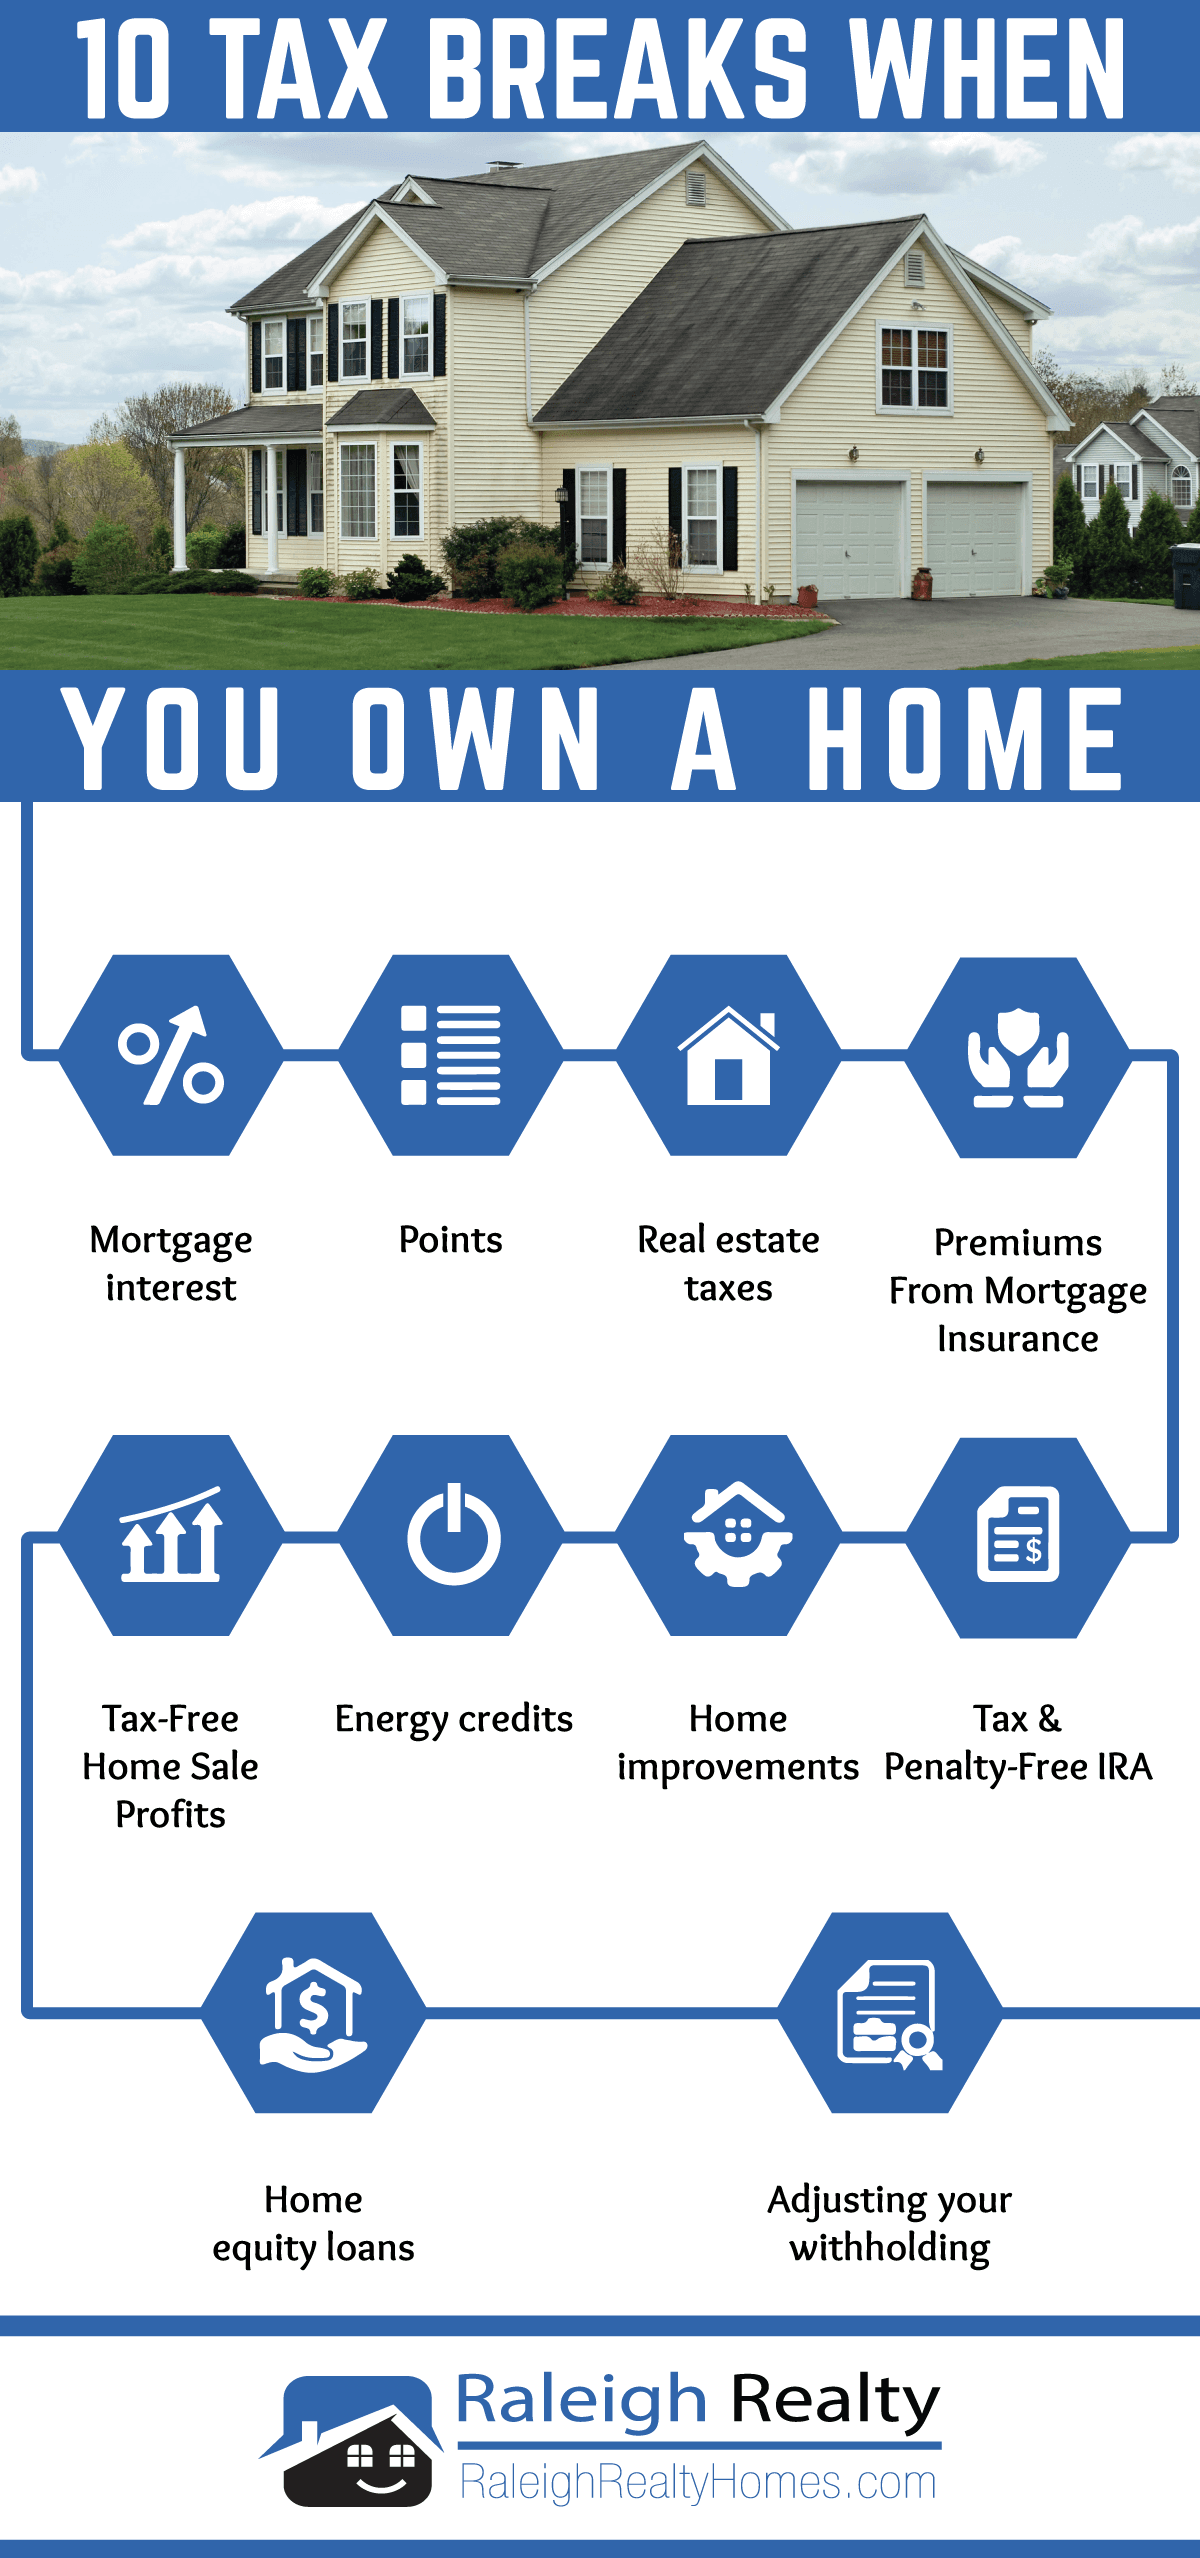 10 Tax Breaks When You Own A Home Infographic